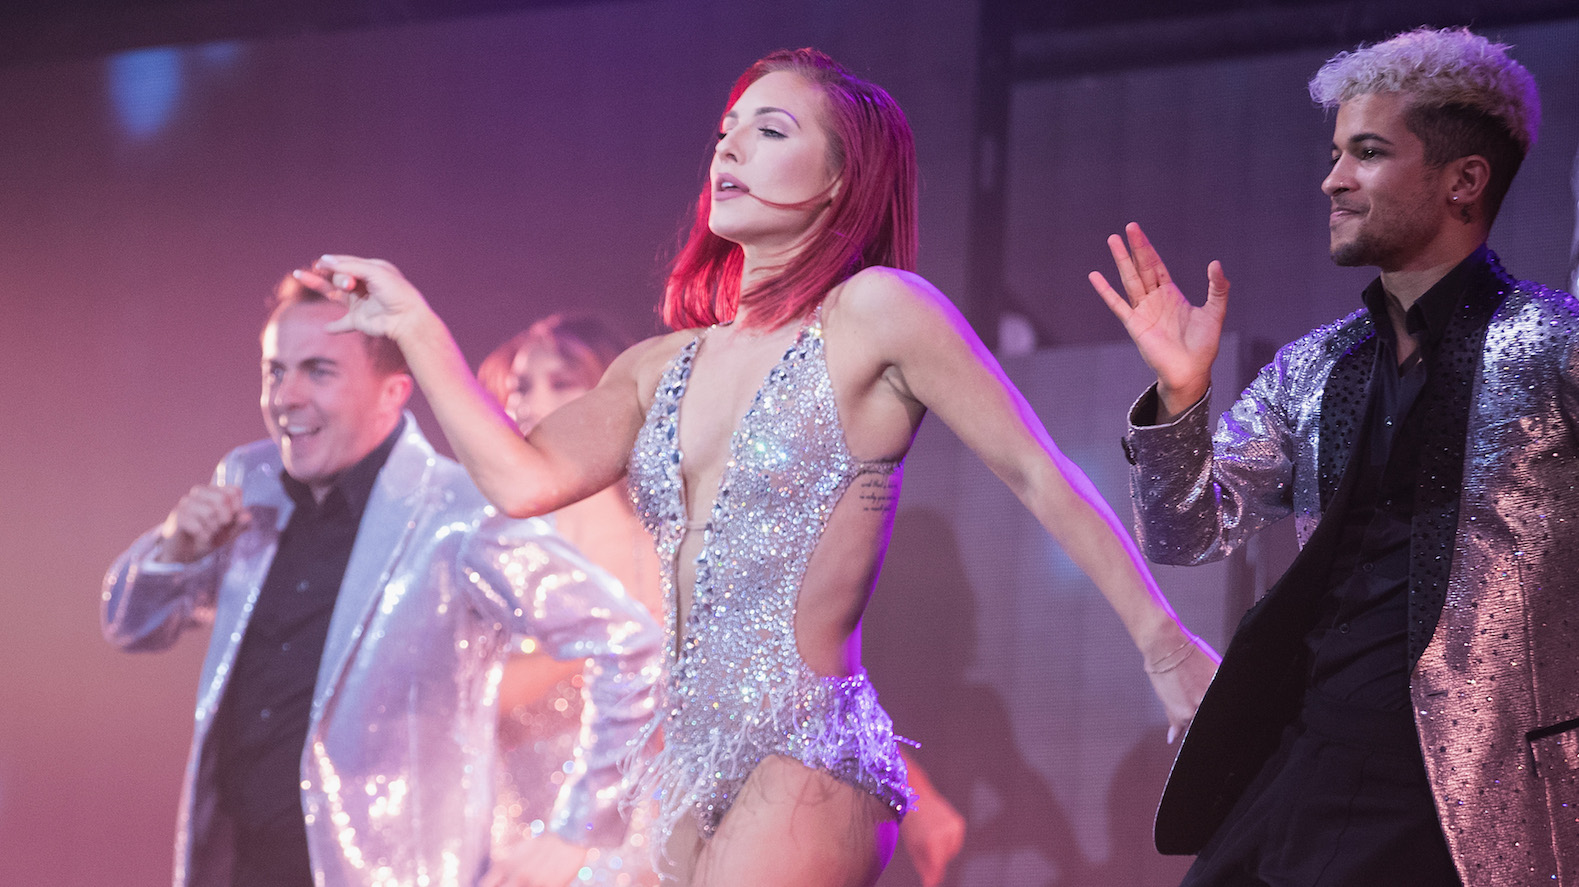 'DWTS' Pro Sharna Burgess' Diet and Exercise Secrets Will Have You Feeling the Burn